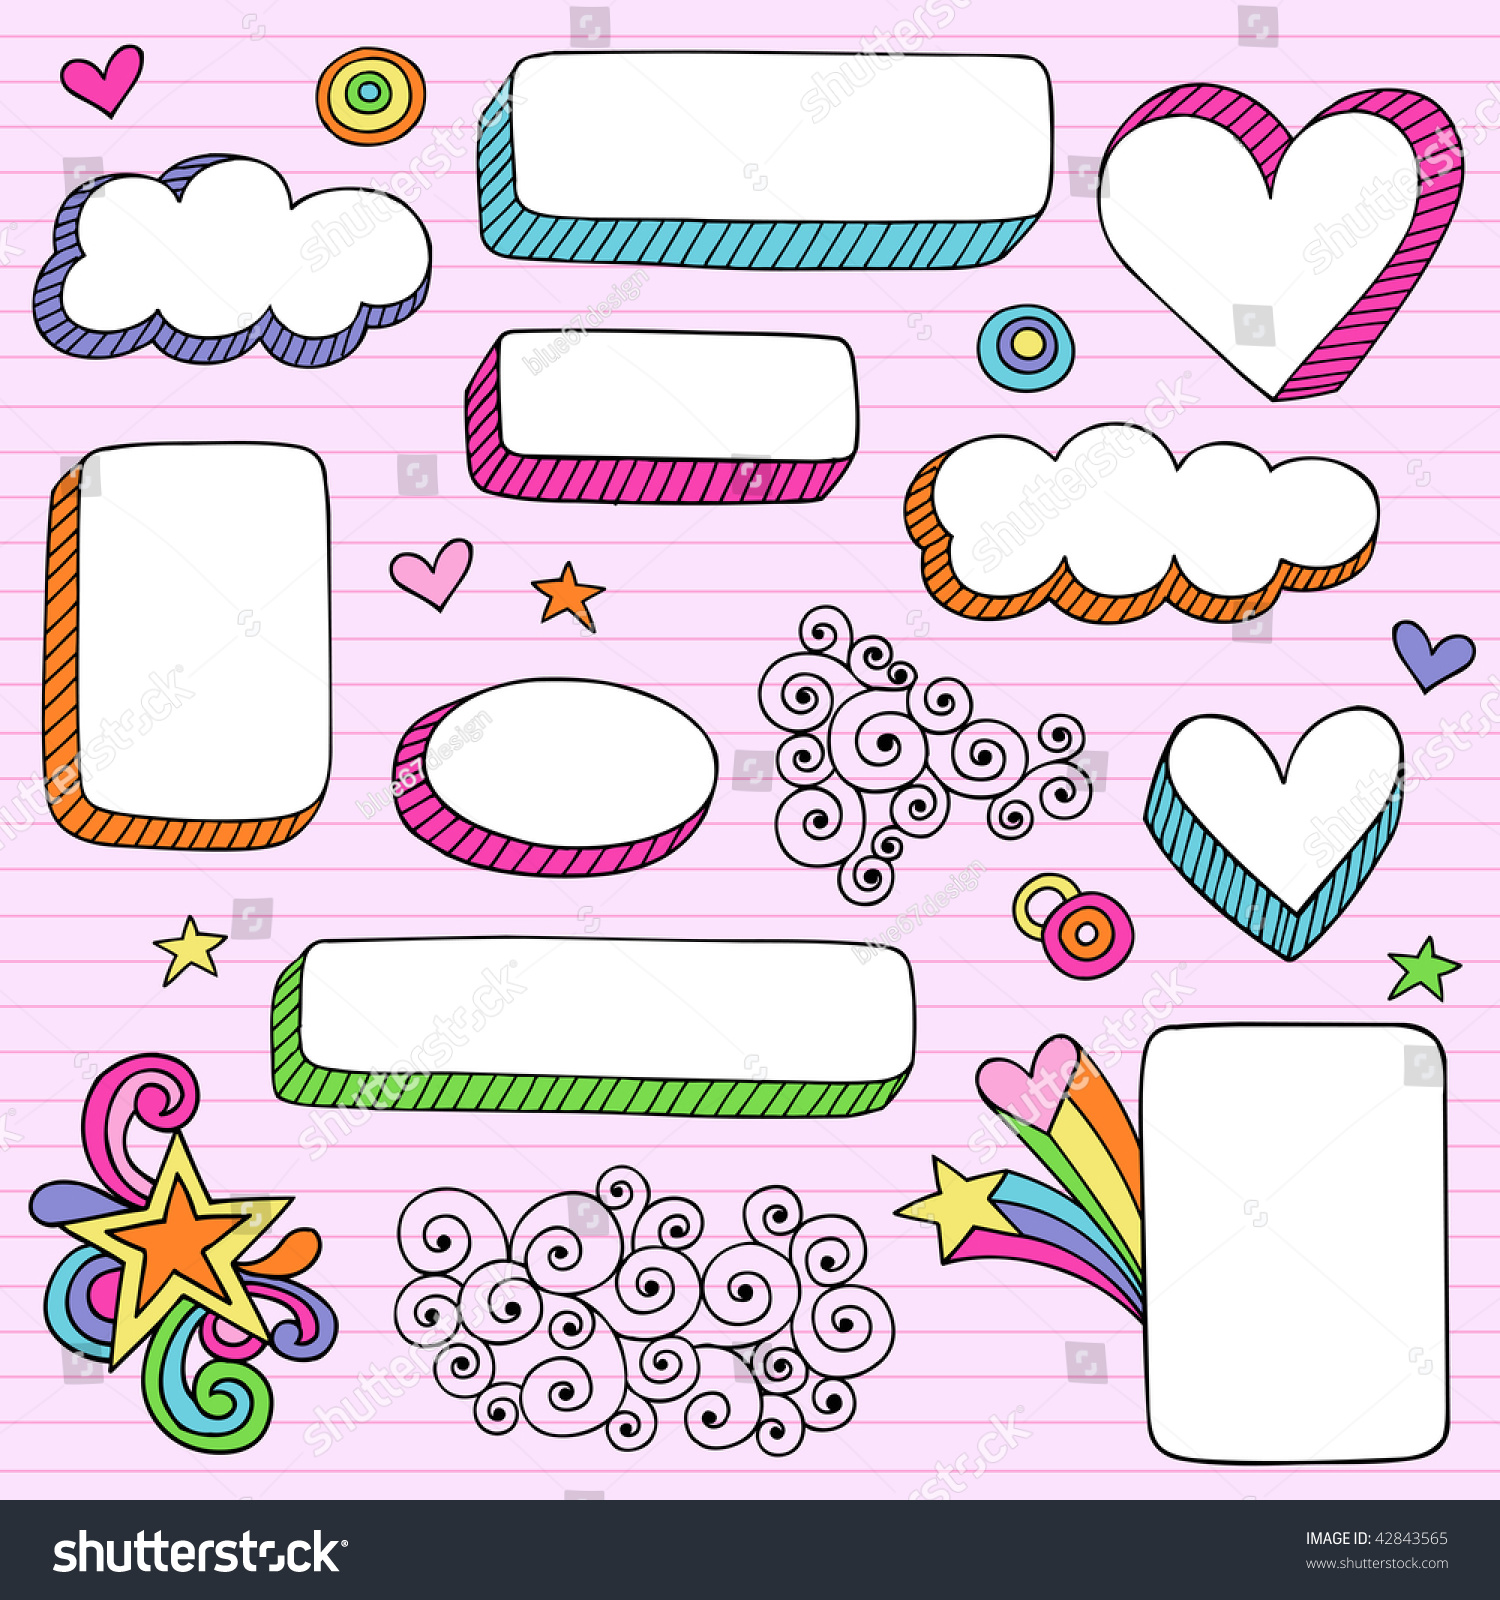 Handdrawn Psychedelic Notebook Doodles 3d Frame Stock